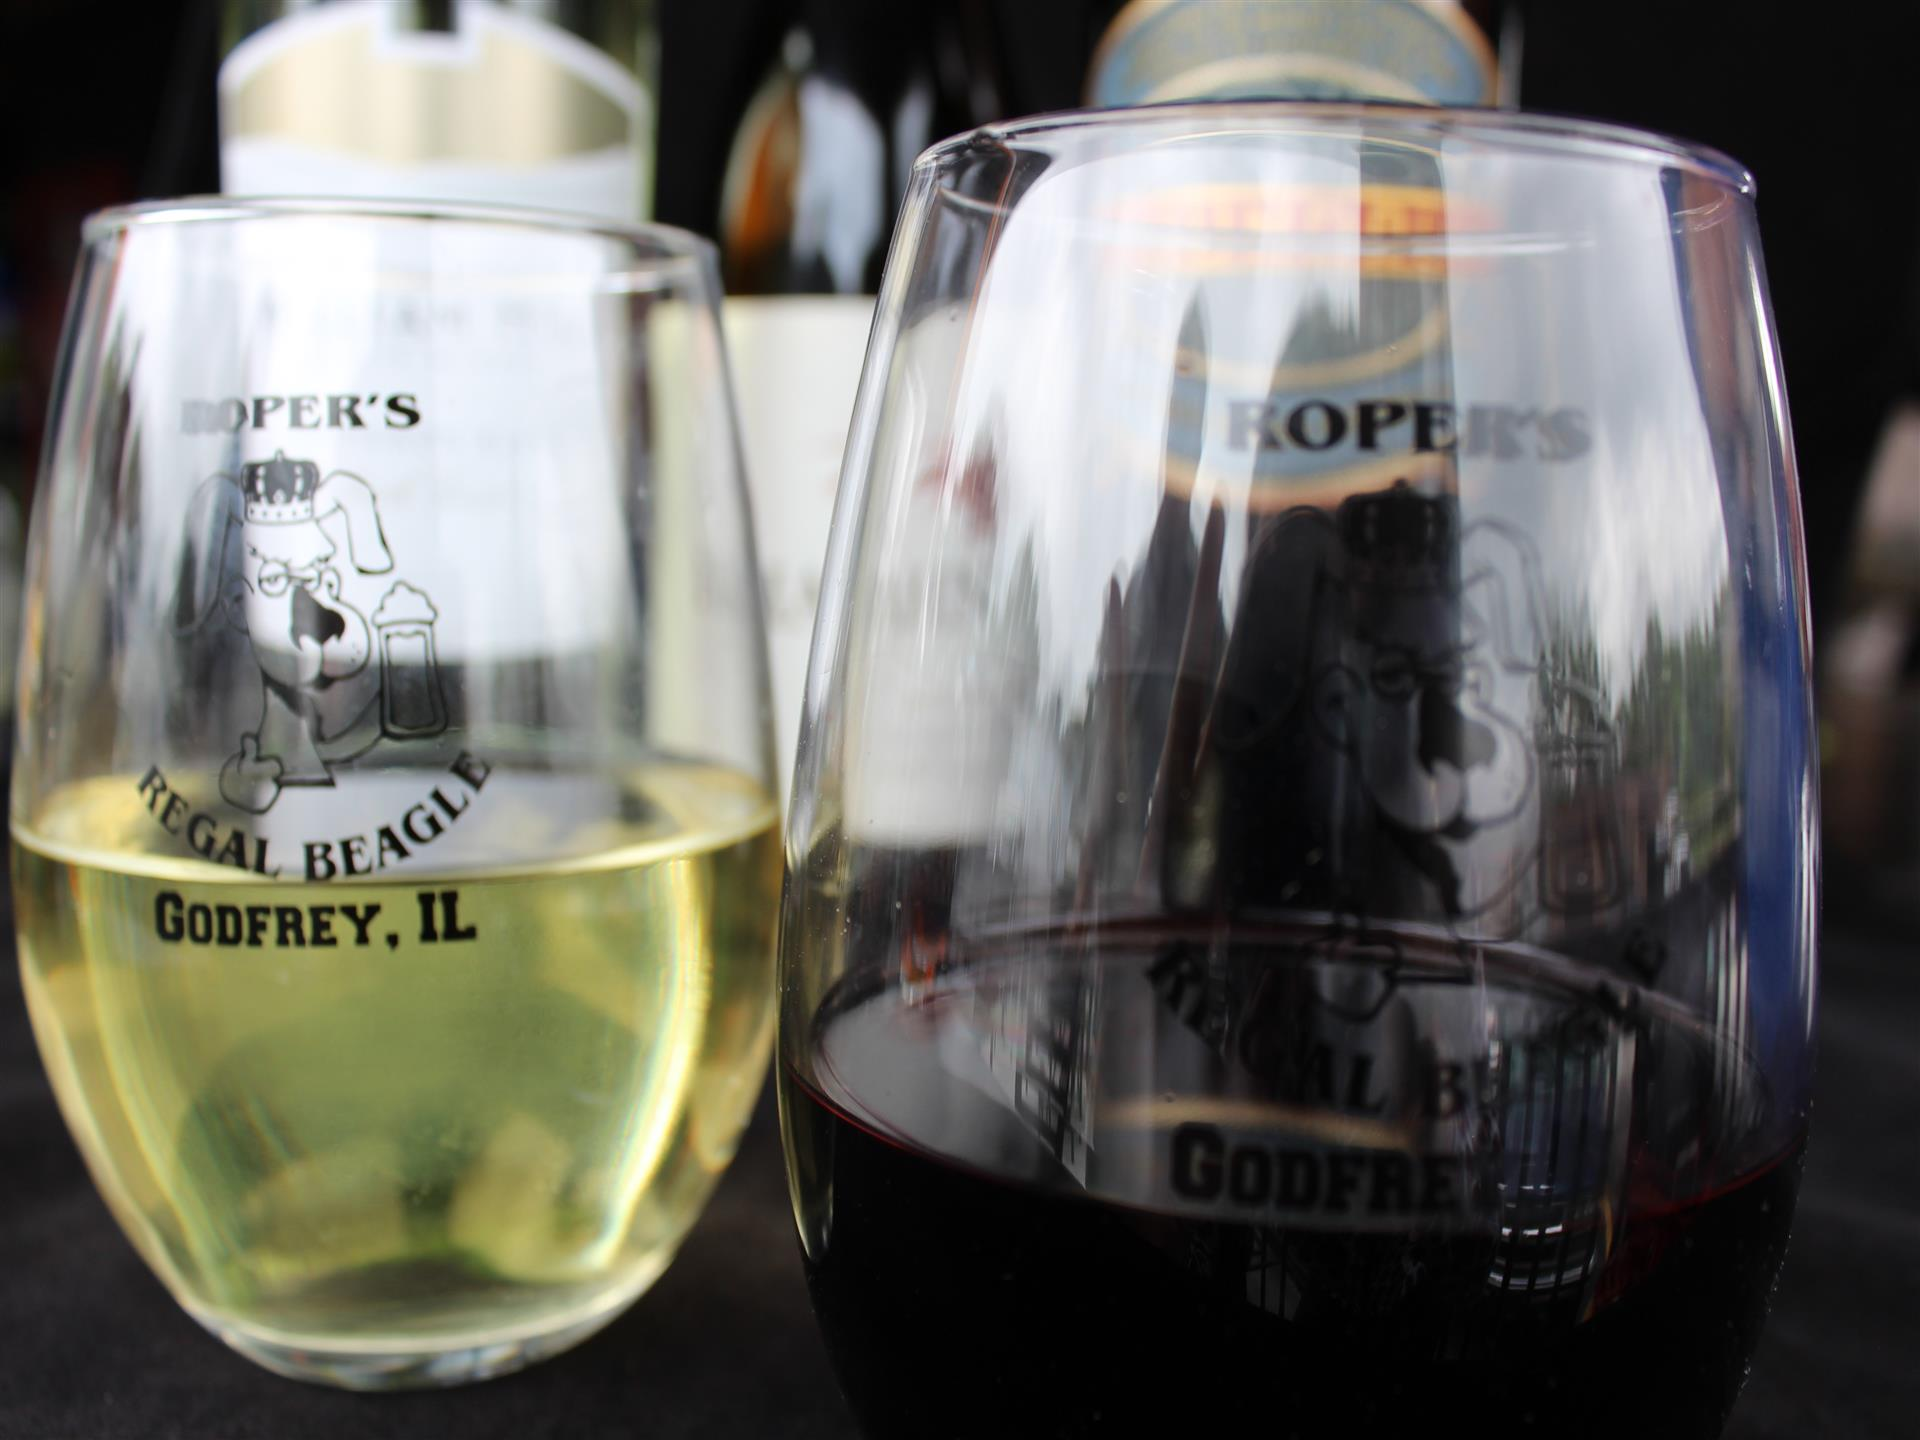 two glasses of red and white wine with Regal Beagle's logo printed on them.